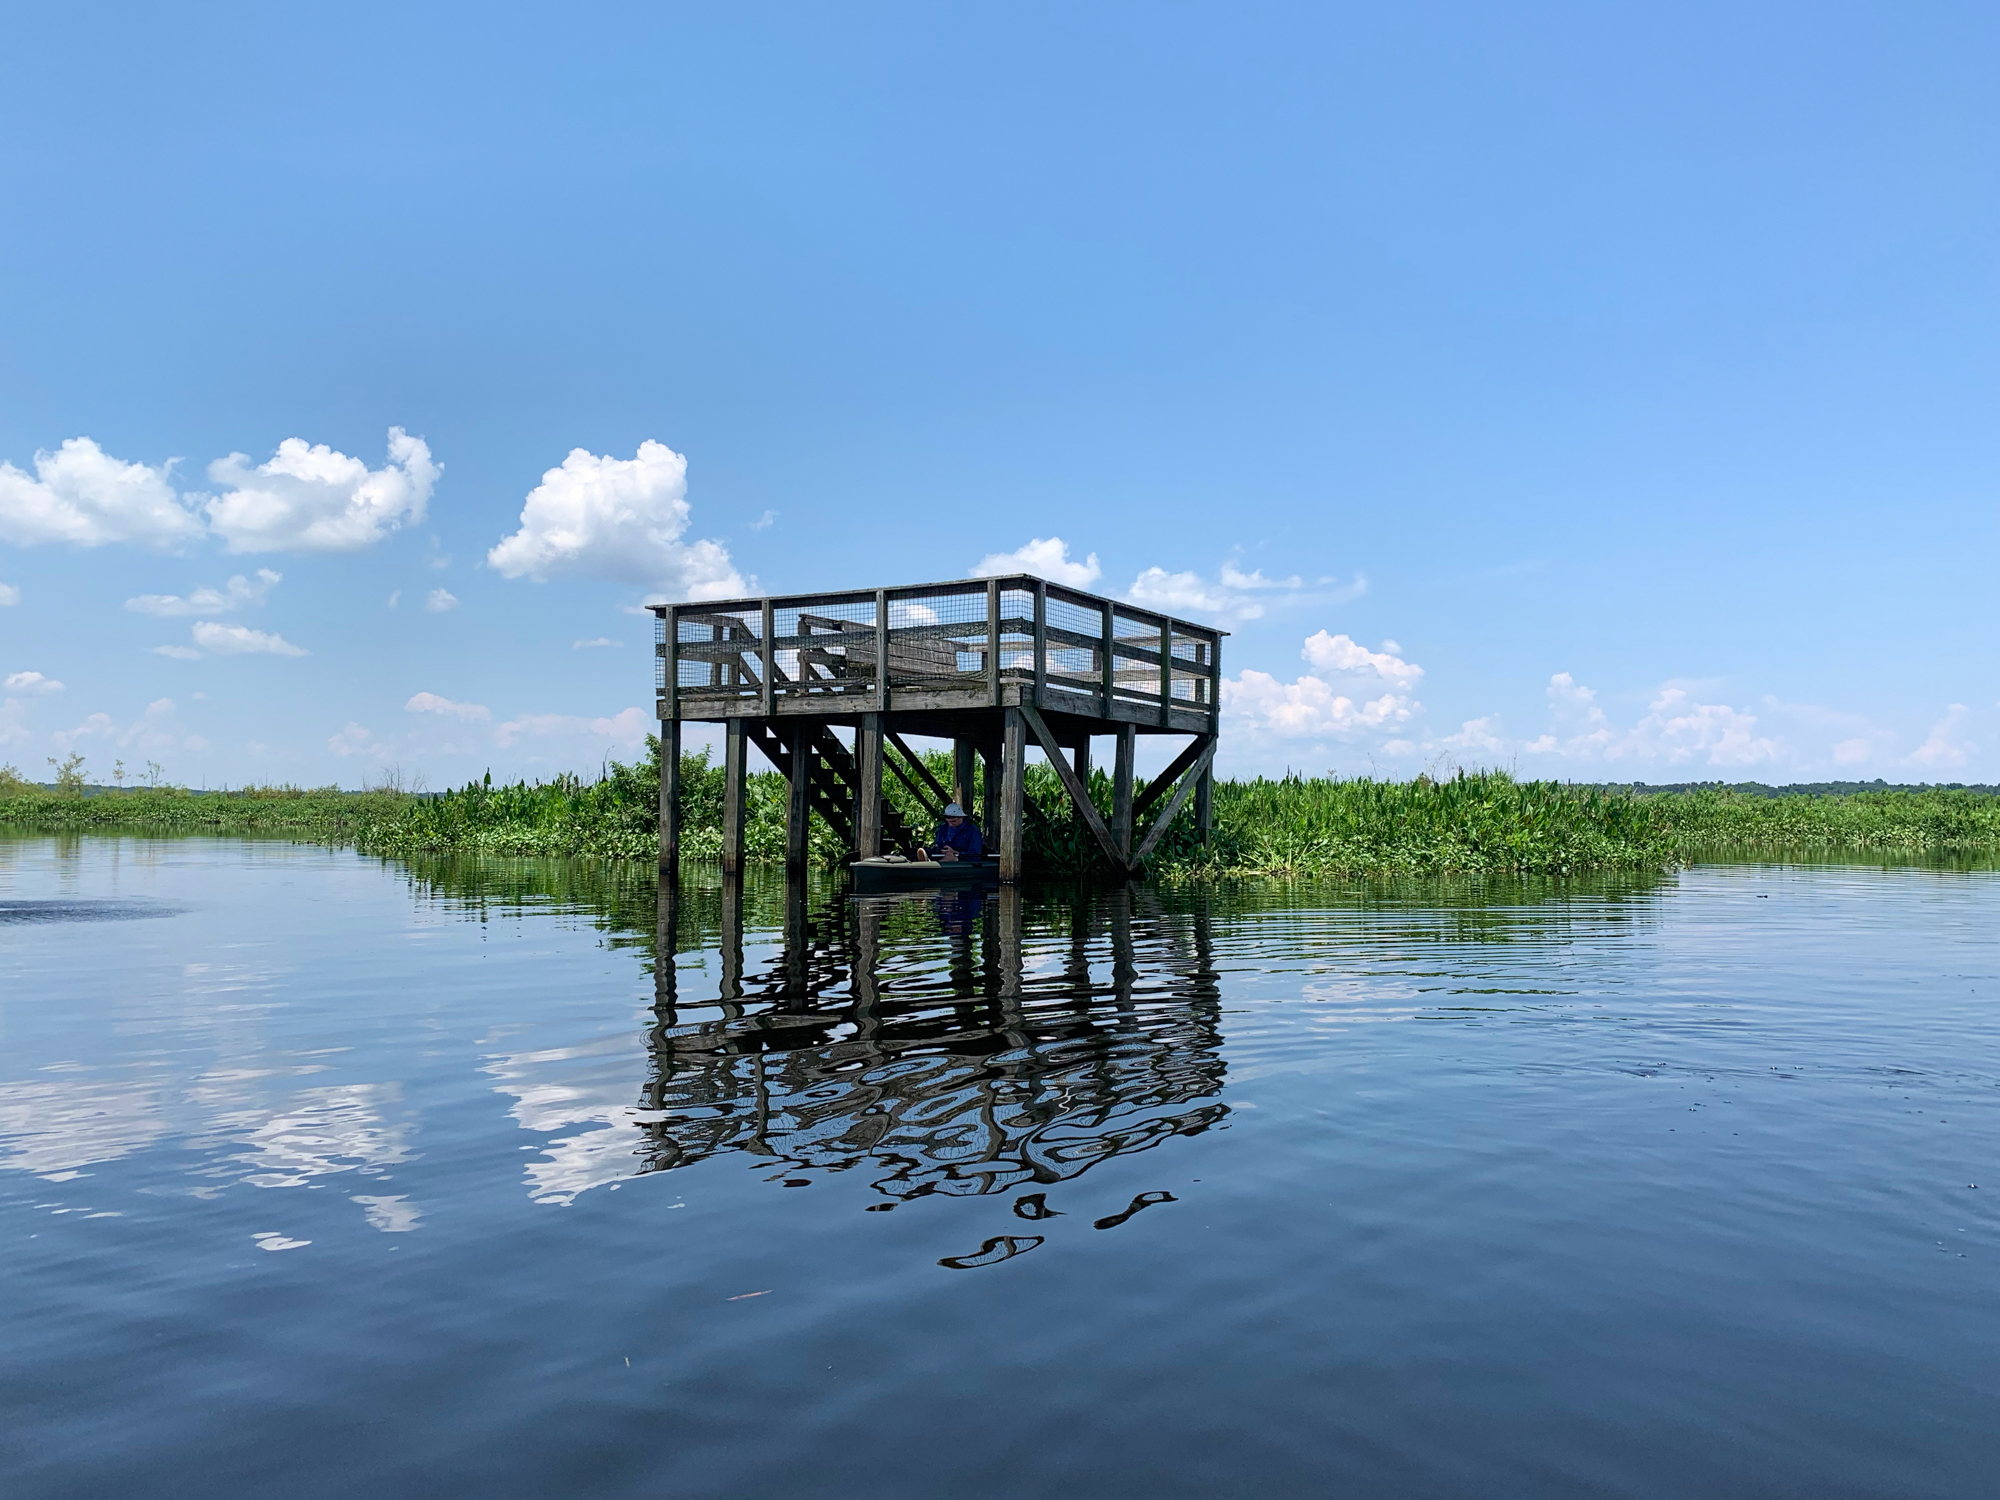 The La Chua Trail observation platform rises from a flooded Paynes Prairie.